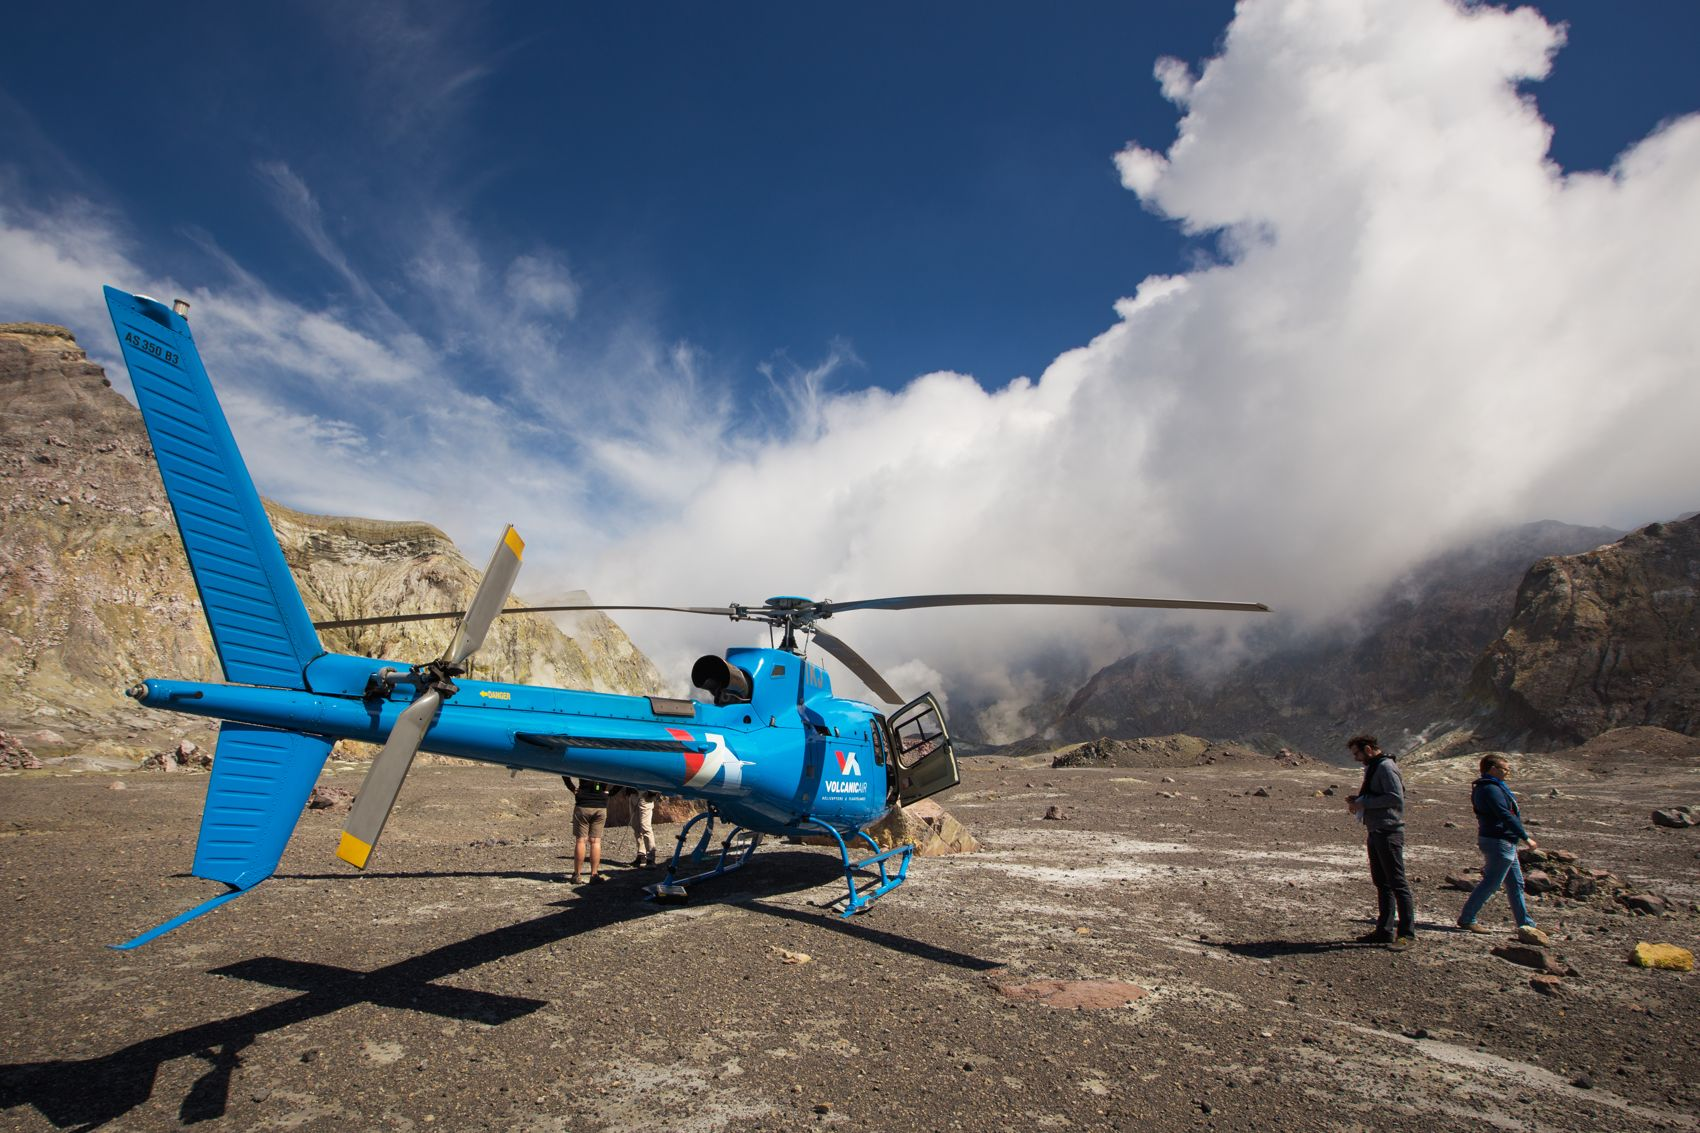 New Zealand Shooting Gallery: Shooting For Travel Magazine In New Zealand